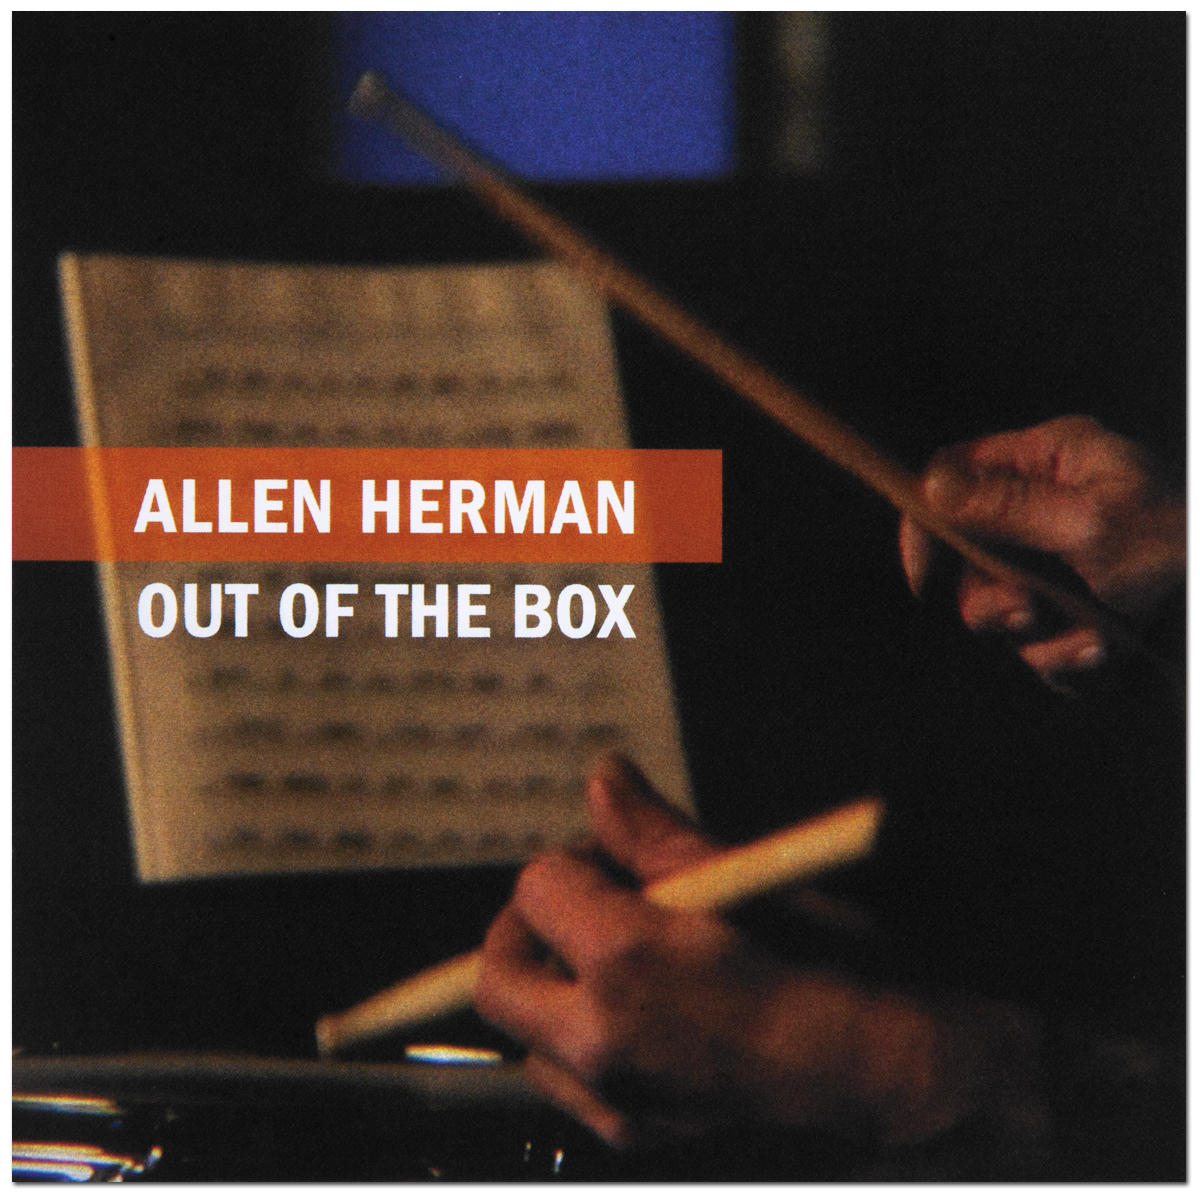 Allen Herman Out of the Box CD